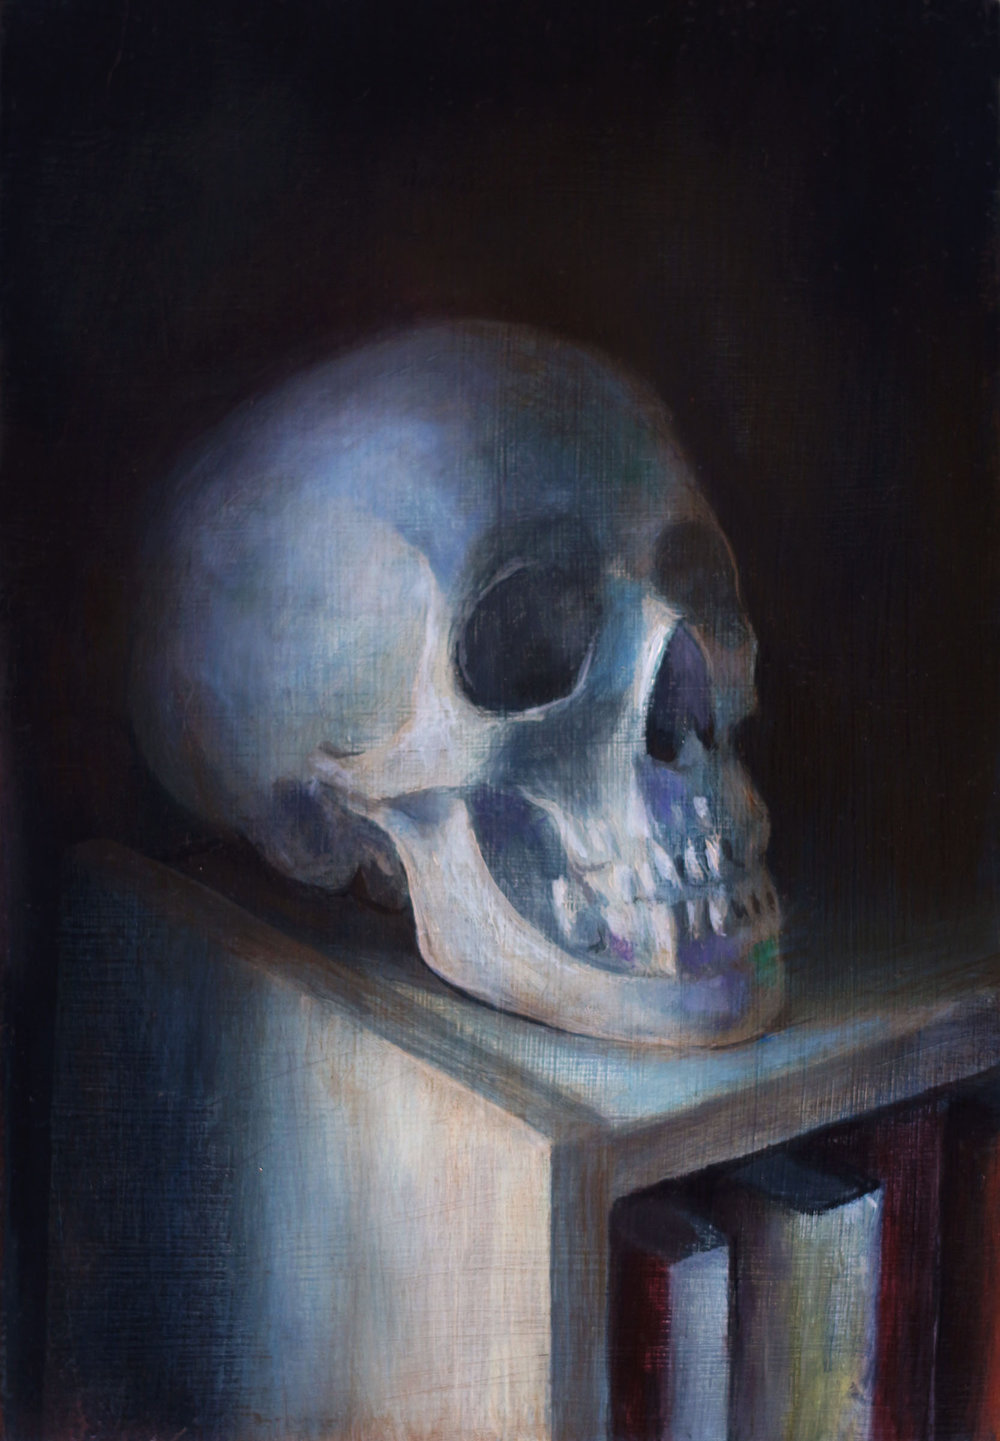 Skull   2017  Oil on linen  7 x 5 inches